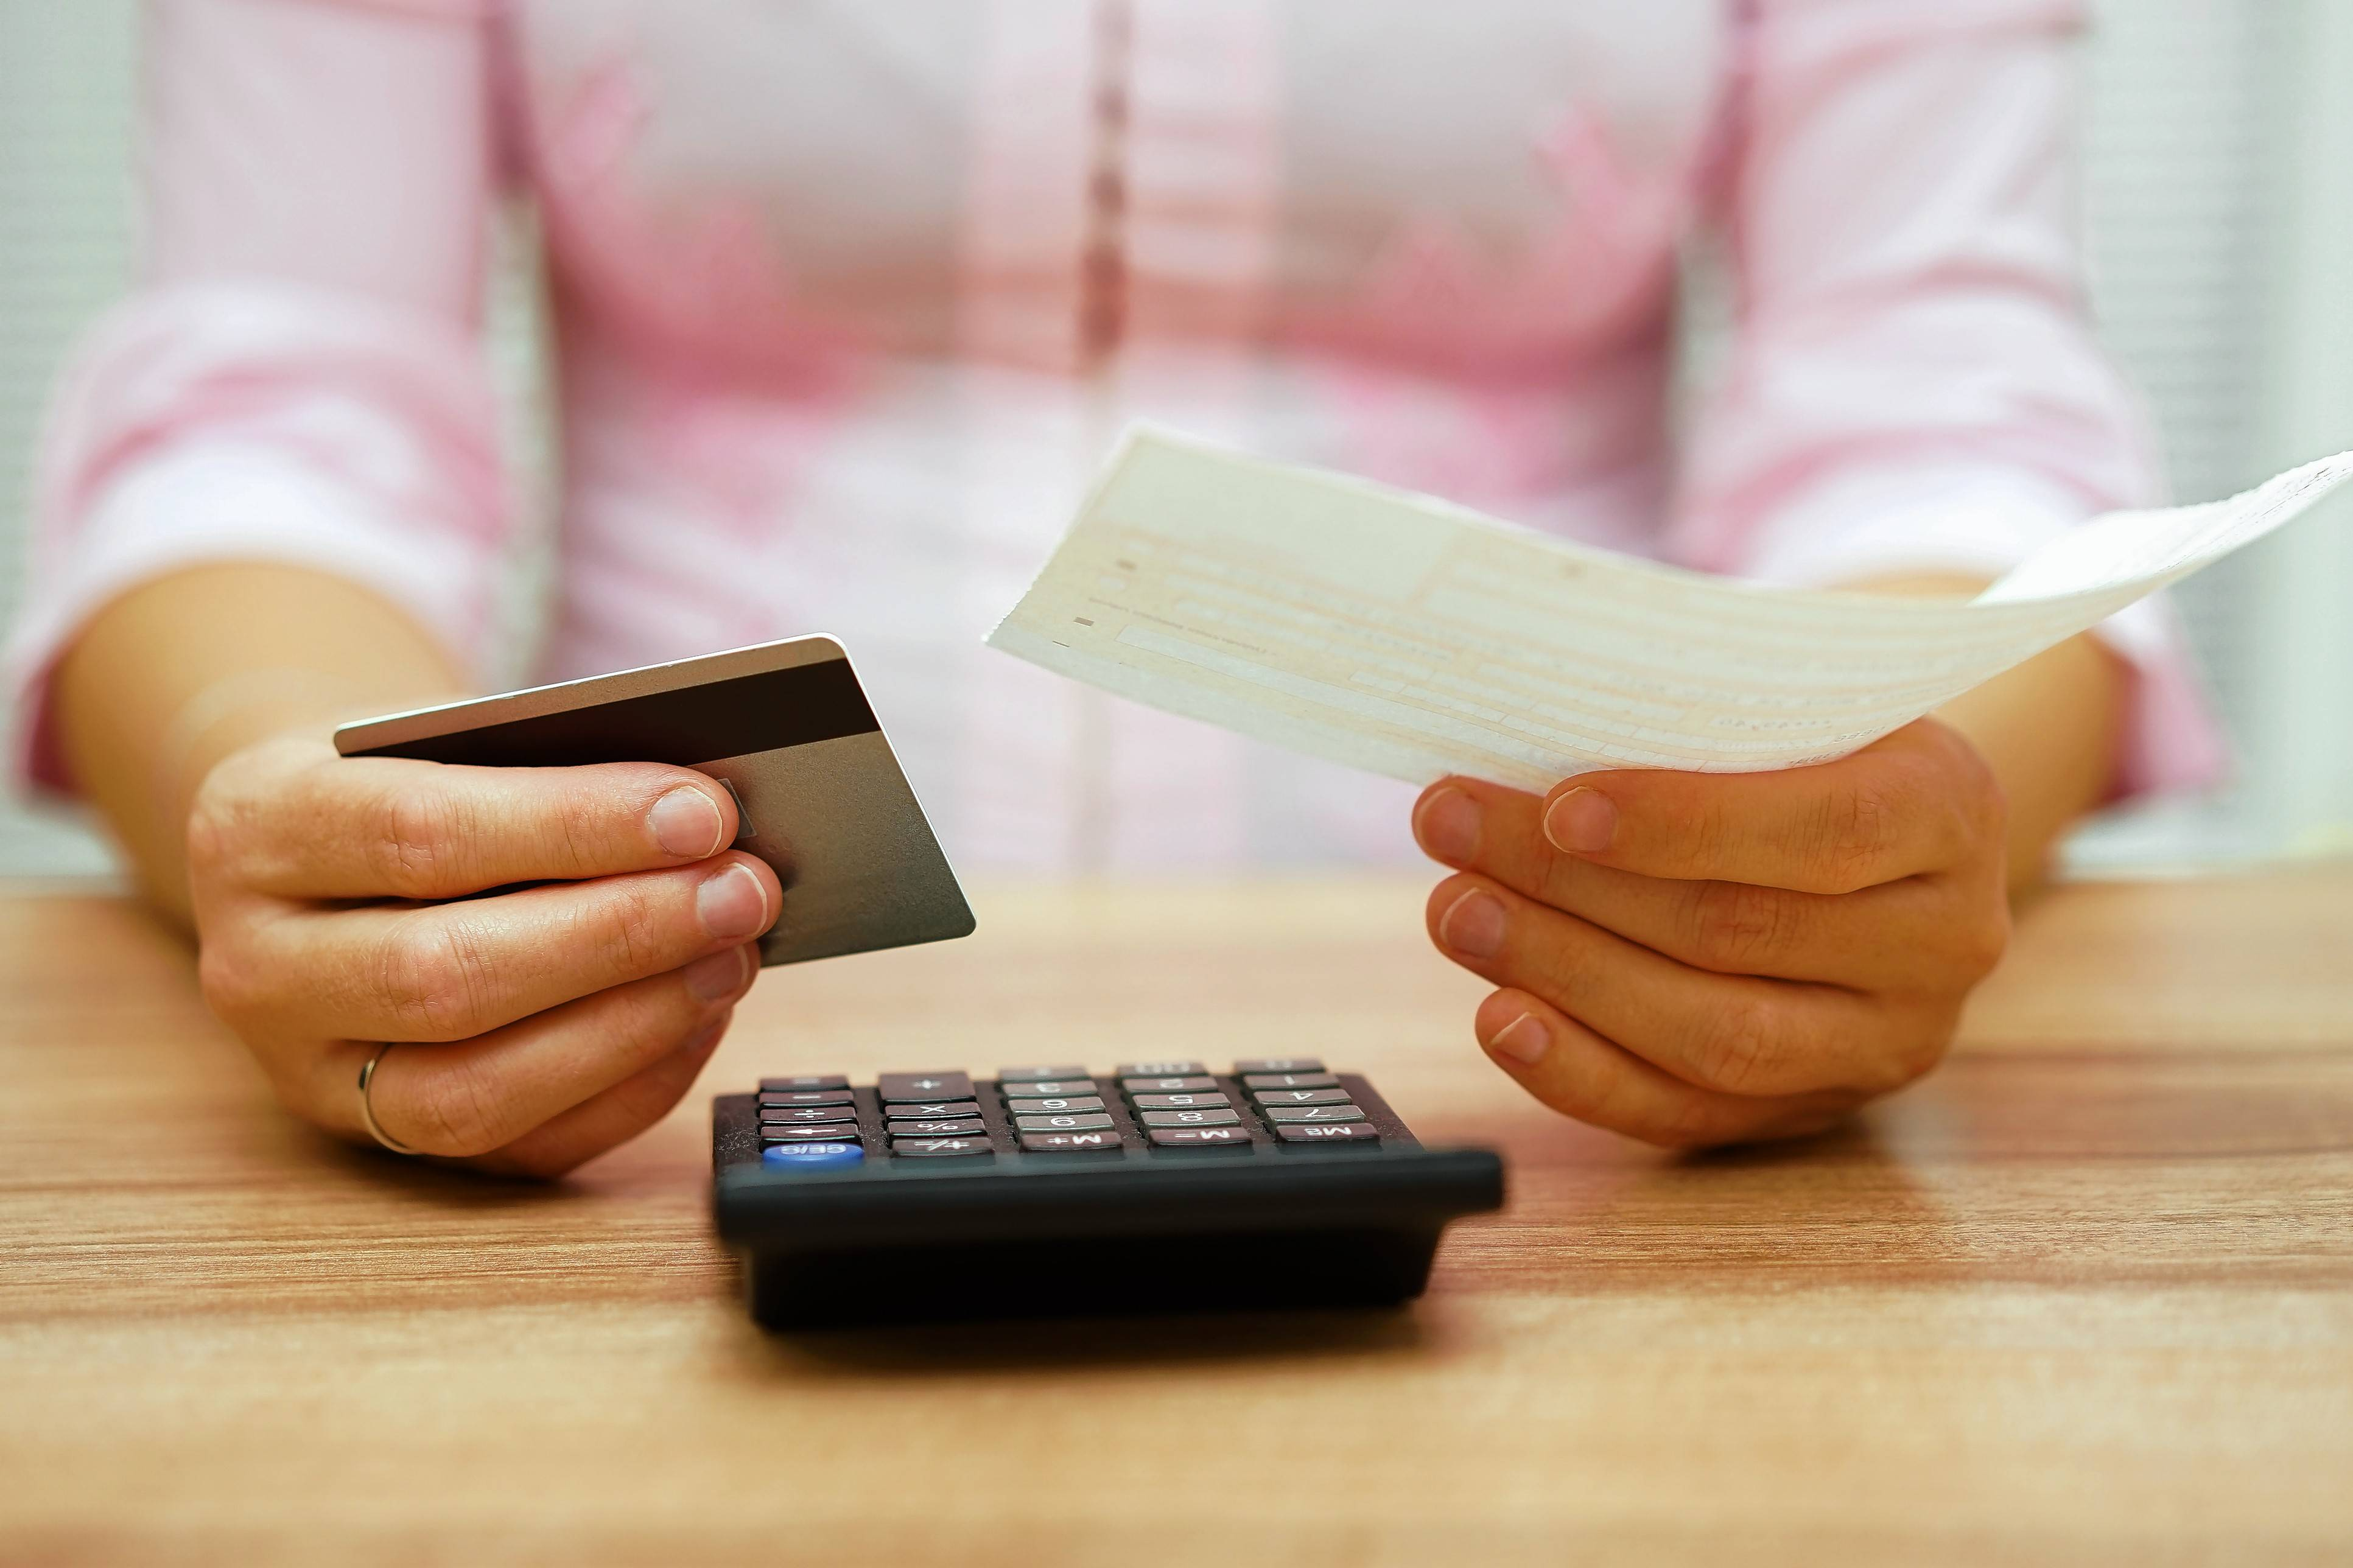 For many households, the monthly paycheck is barely enough to cover the bills. Nearly 60 percent of consumers surveyed this month by Bankrate.com said they didn't have enough cash to cover unexpected costs, such as a $500 auto repair bill.